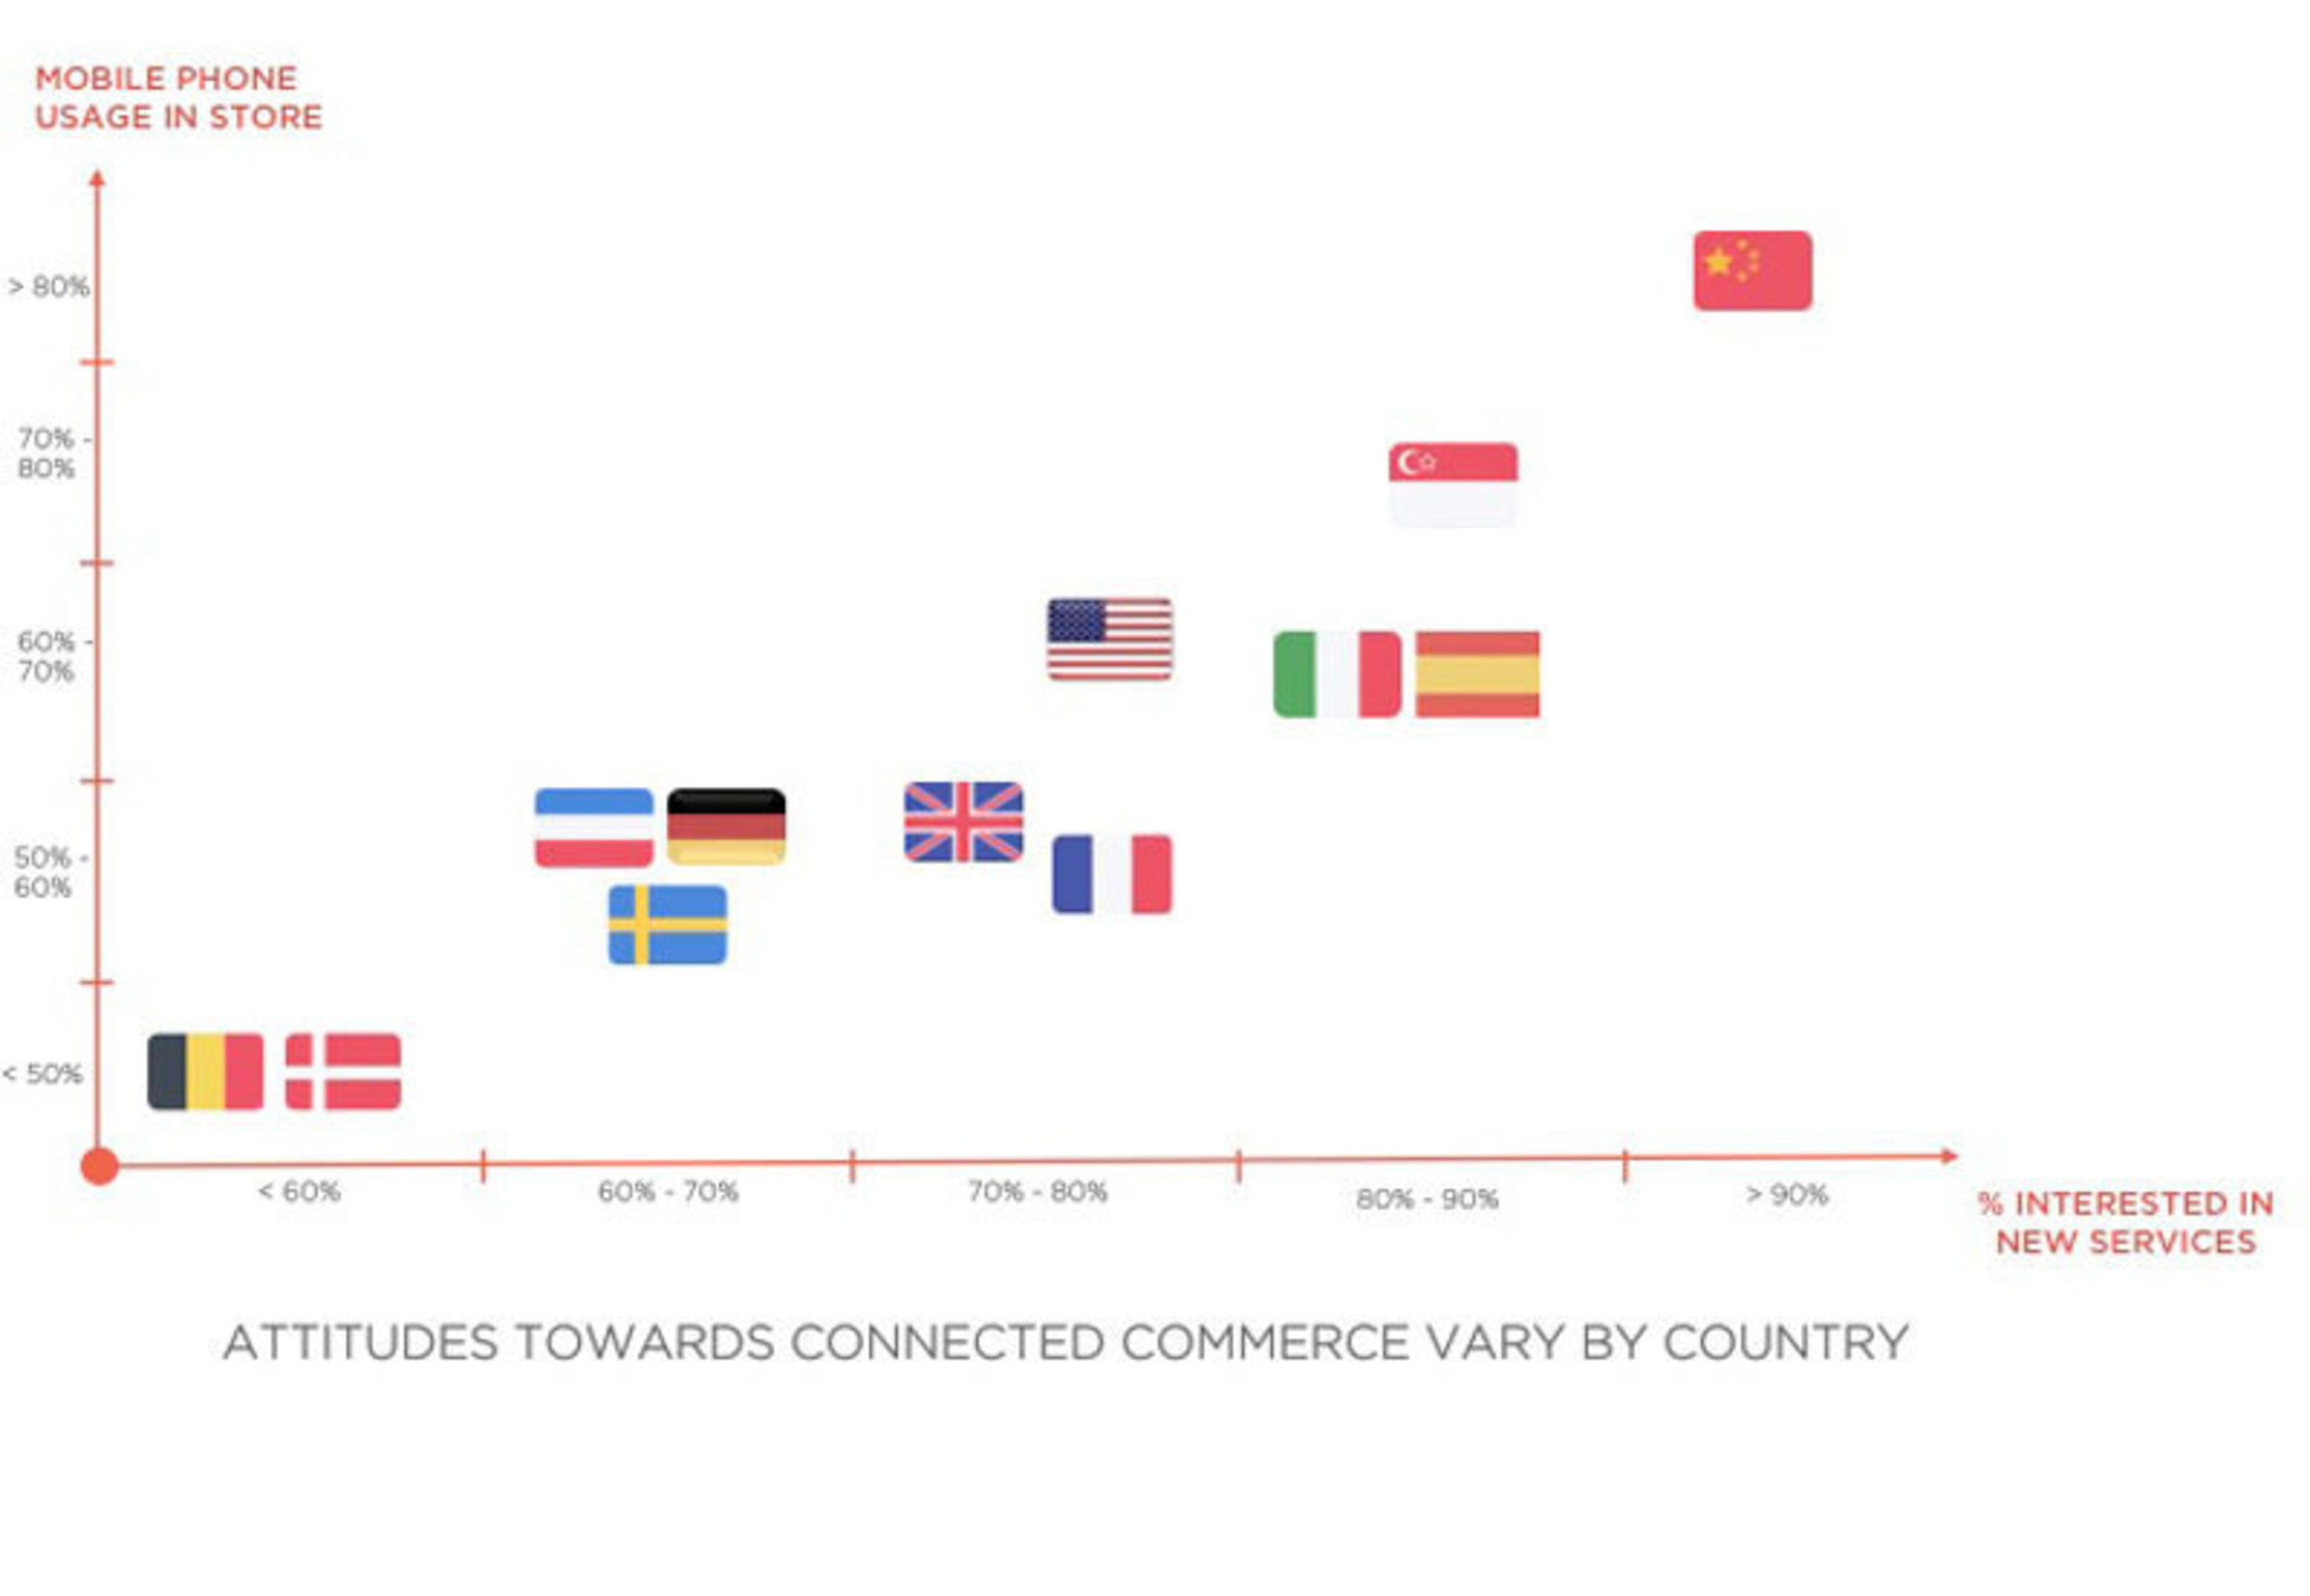 Attitudes Towards Connected Commerce Vary by Country. (PRNewsFoto/DigitasLBi) (PRNewsFoto/DIGITASLBI)